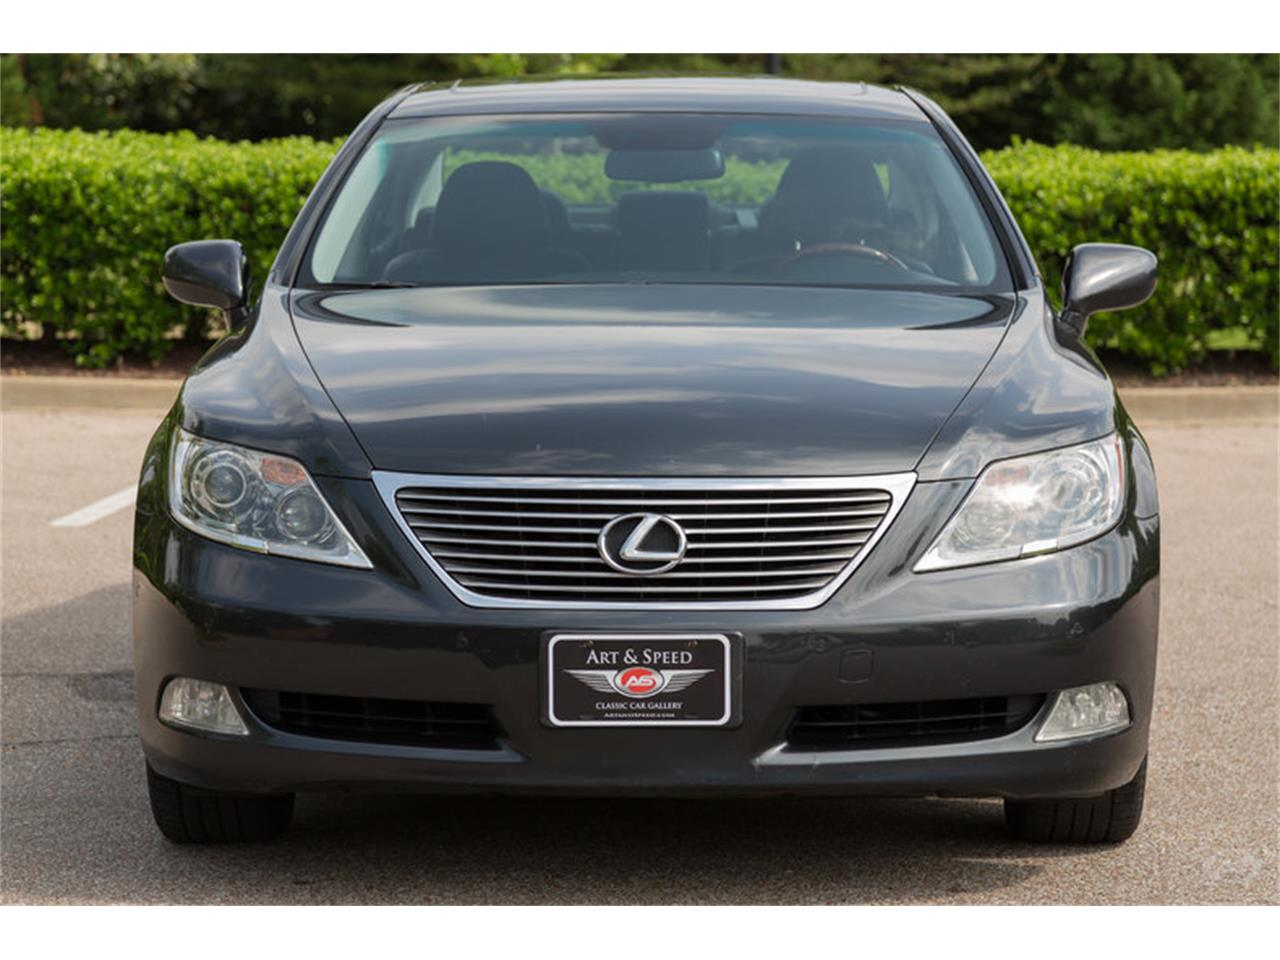 Large Picture of 2008 Lexus LS460 located in Tennessee - $19,900.00 Offered by Art & Speed - L6Q7